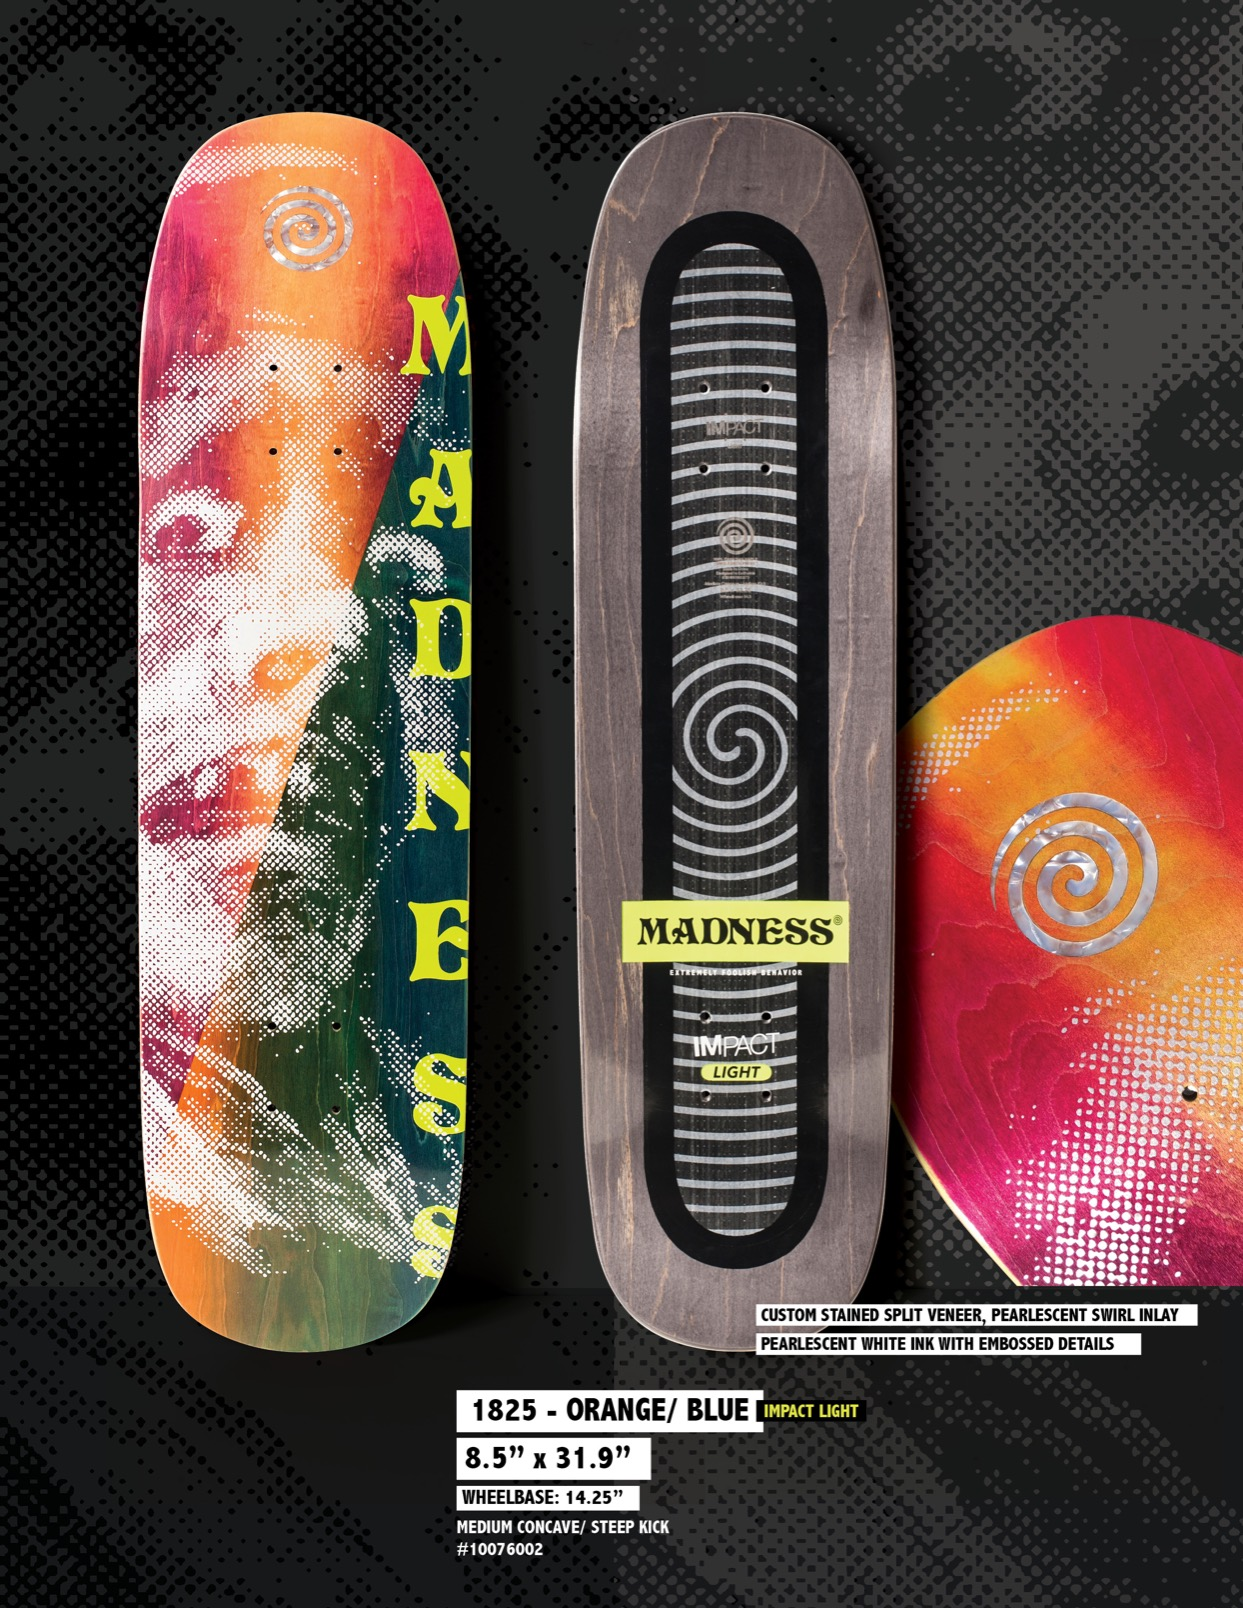 Madness_Skateboards_1825.jpg